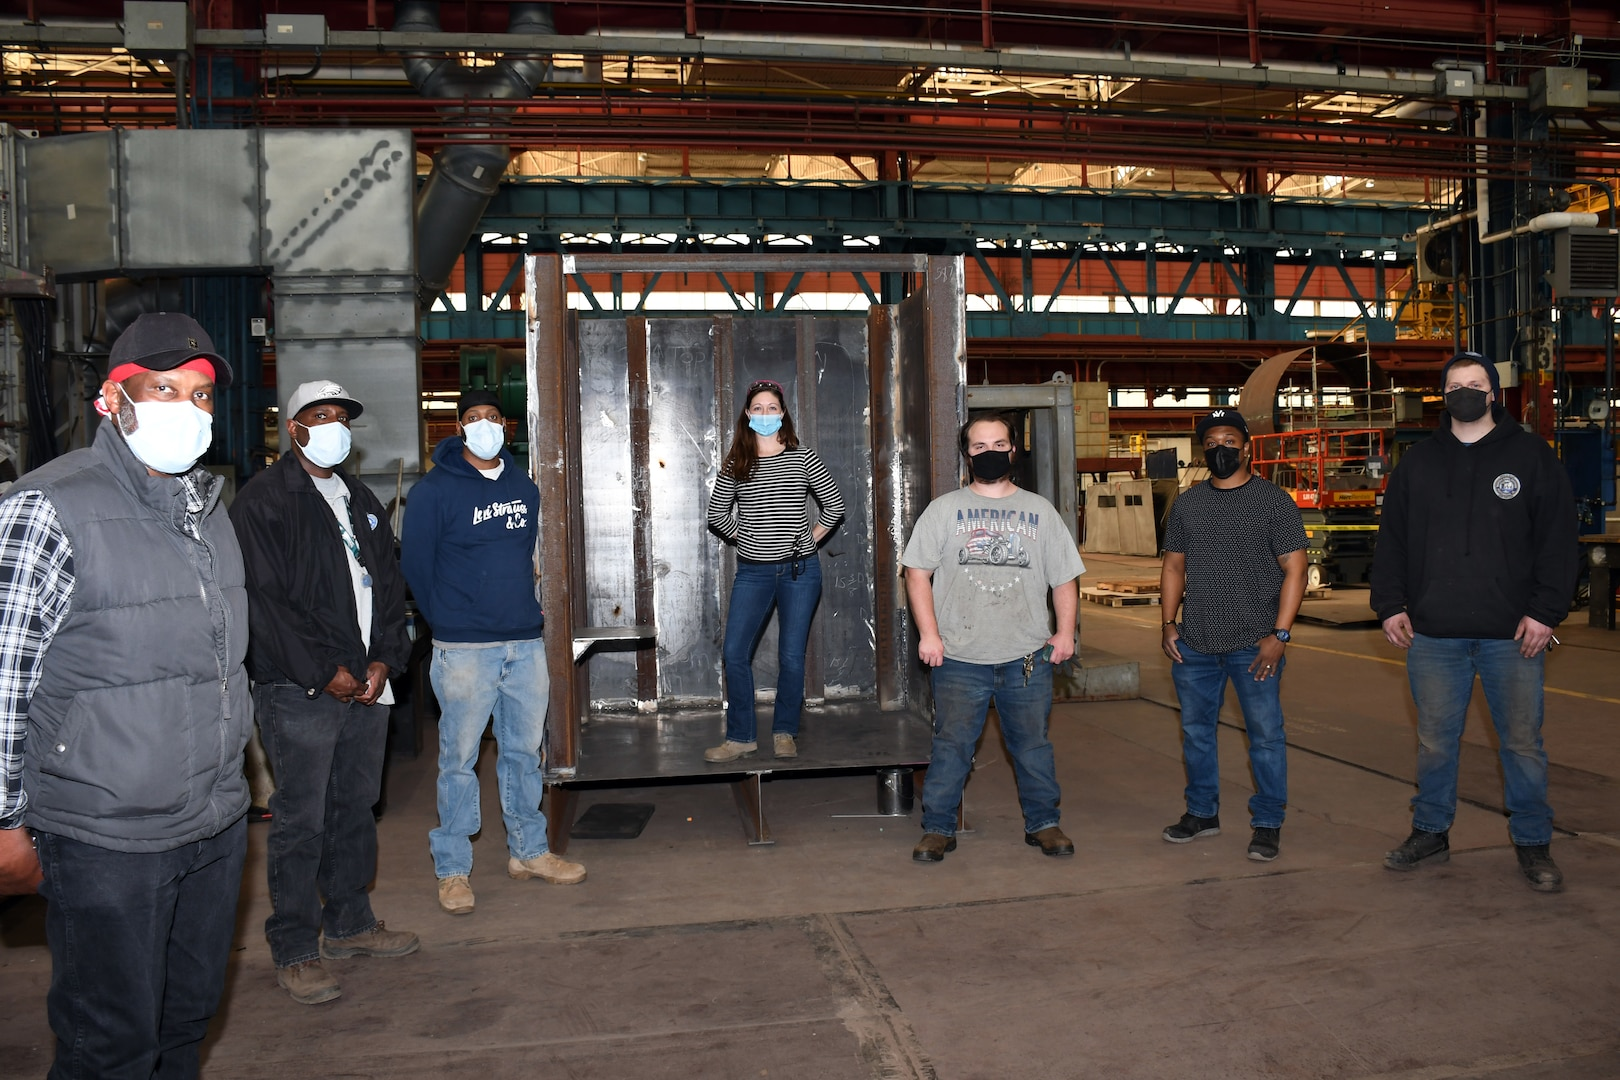 Employees of Norfolk Naval Shipyard's Metal Inspectors Division (Code 135), shipfitting shop (Shop 11) and welding shop (Shop 26) stand by one of their newest welding mock up pieces. These pieces are used to help train, develop and simulate real life welding and inspection scenarios.